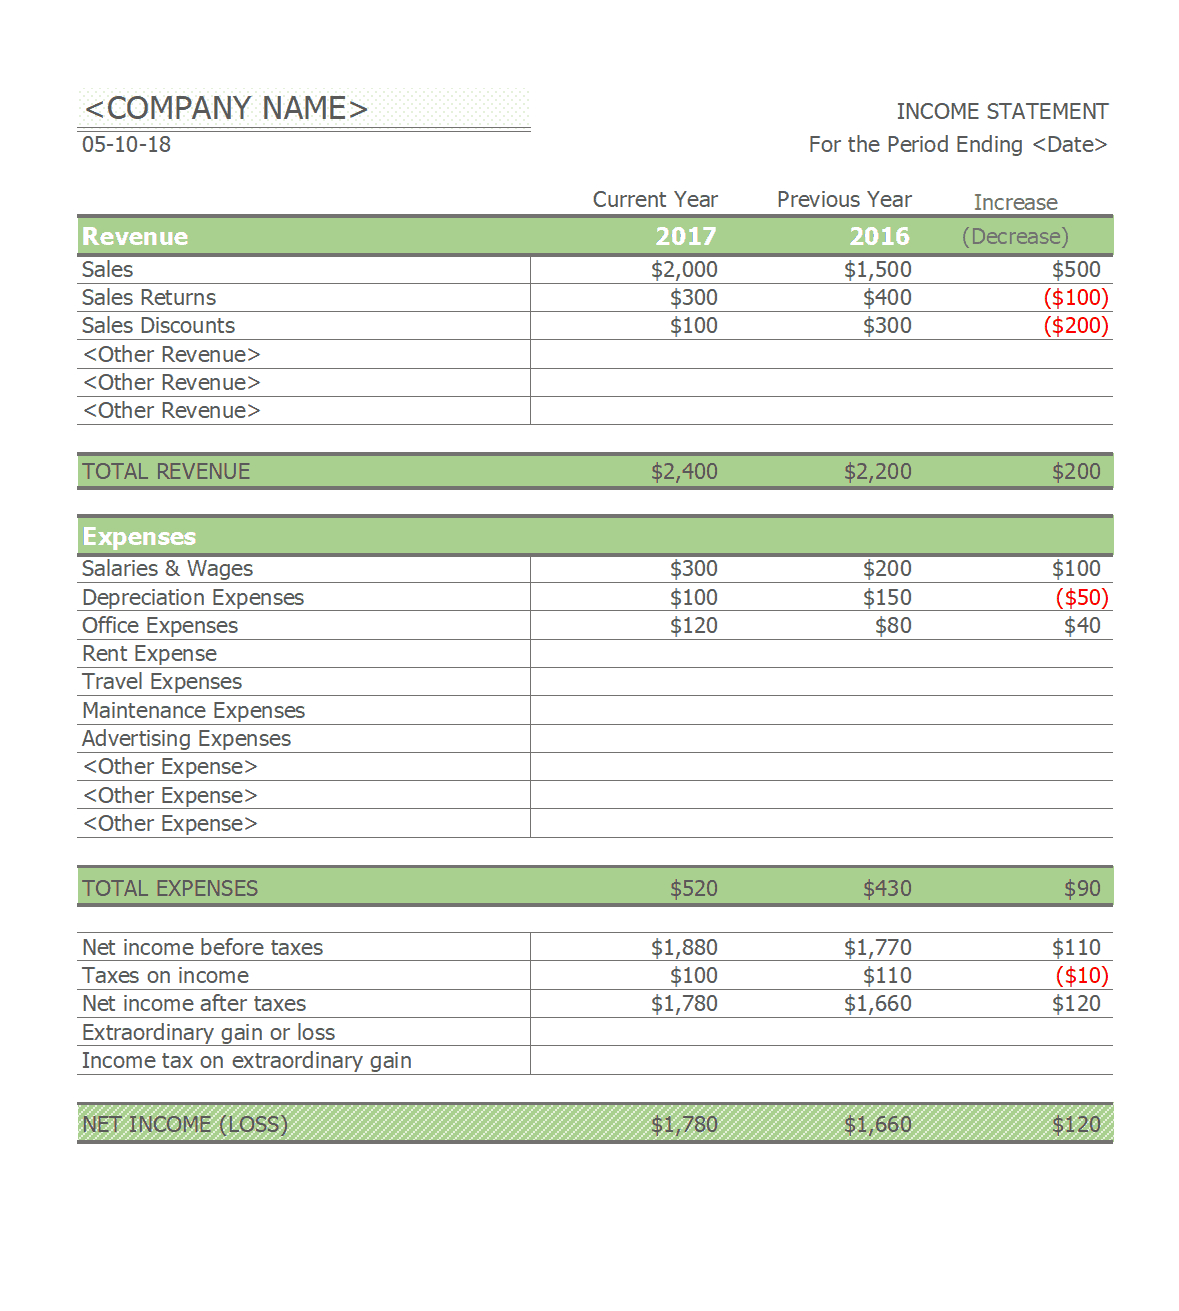 41 Free Income Statement Templates & Examples - Template Lab And Quarterly Income Statement Template